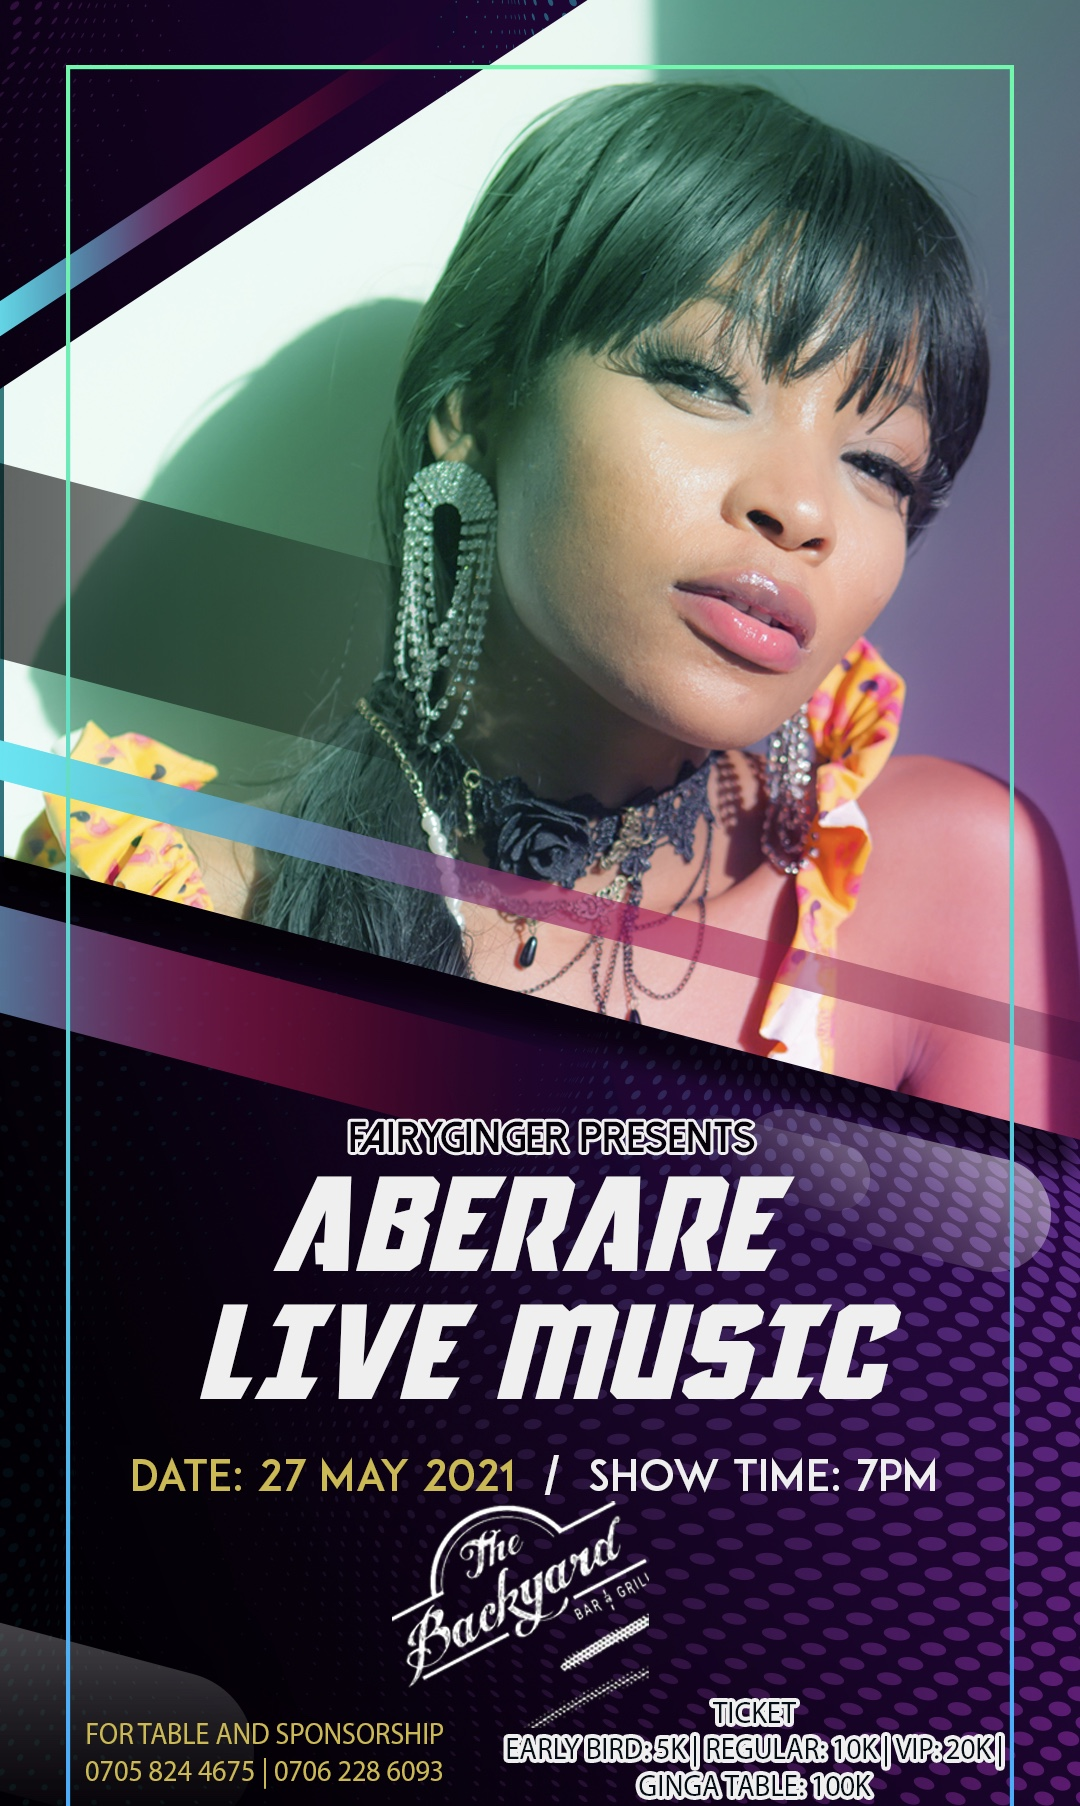 Aberare Live Post free event in Nigeria using tickethub.ng, buy and sell tickets to event